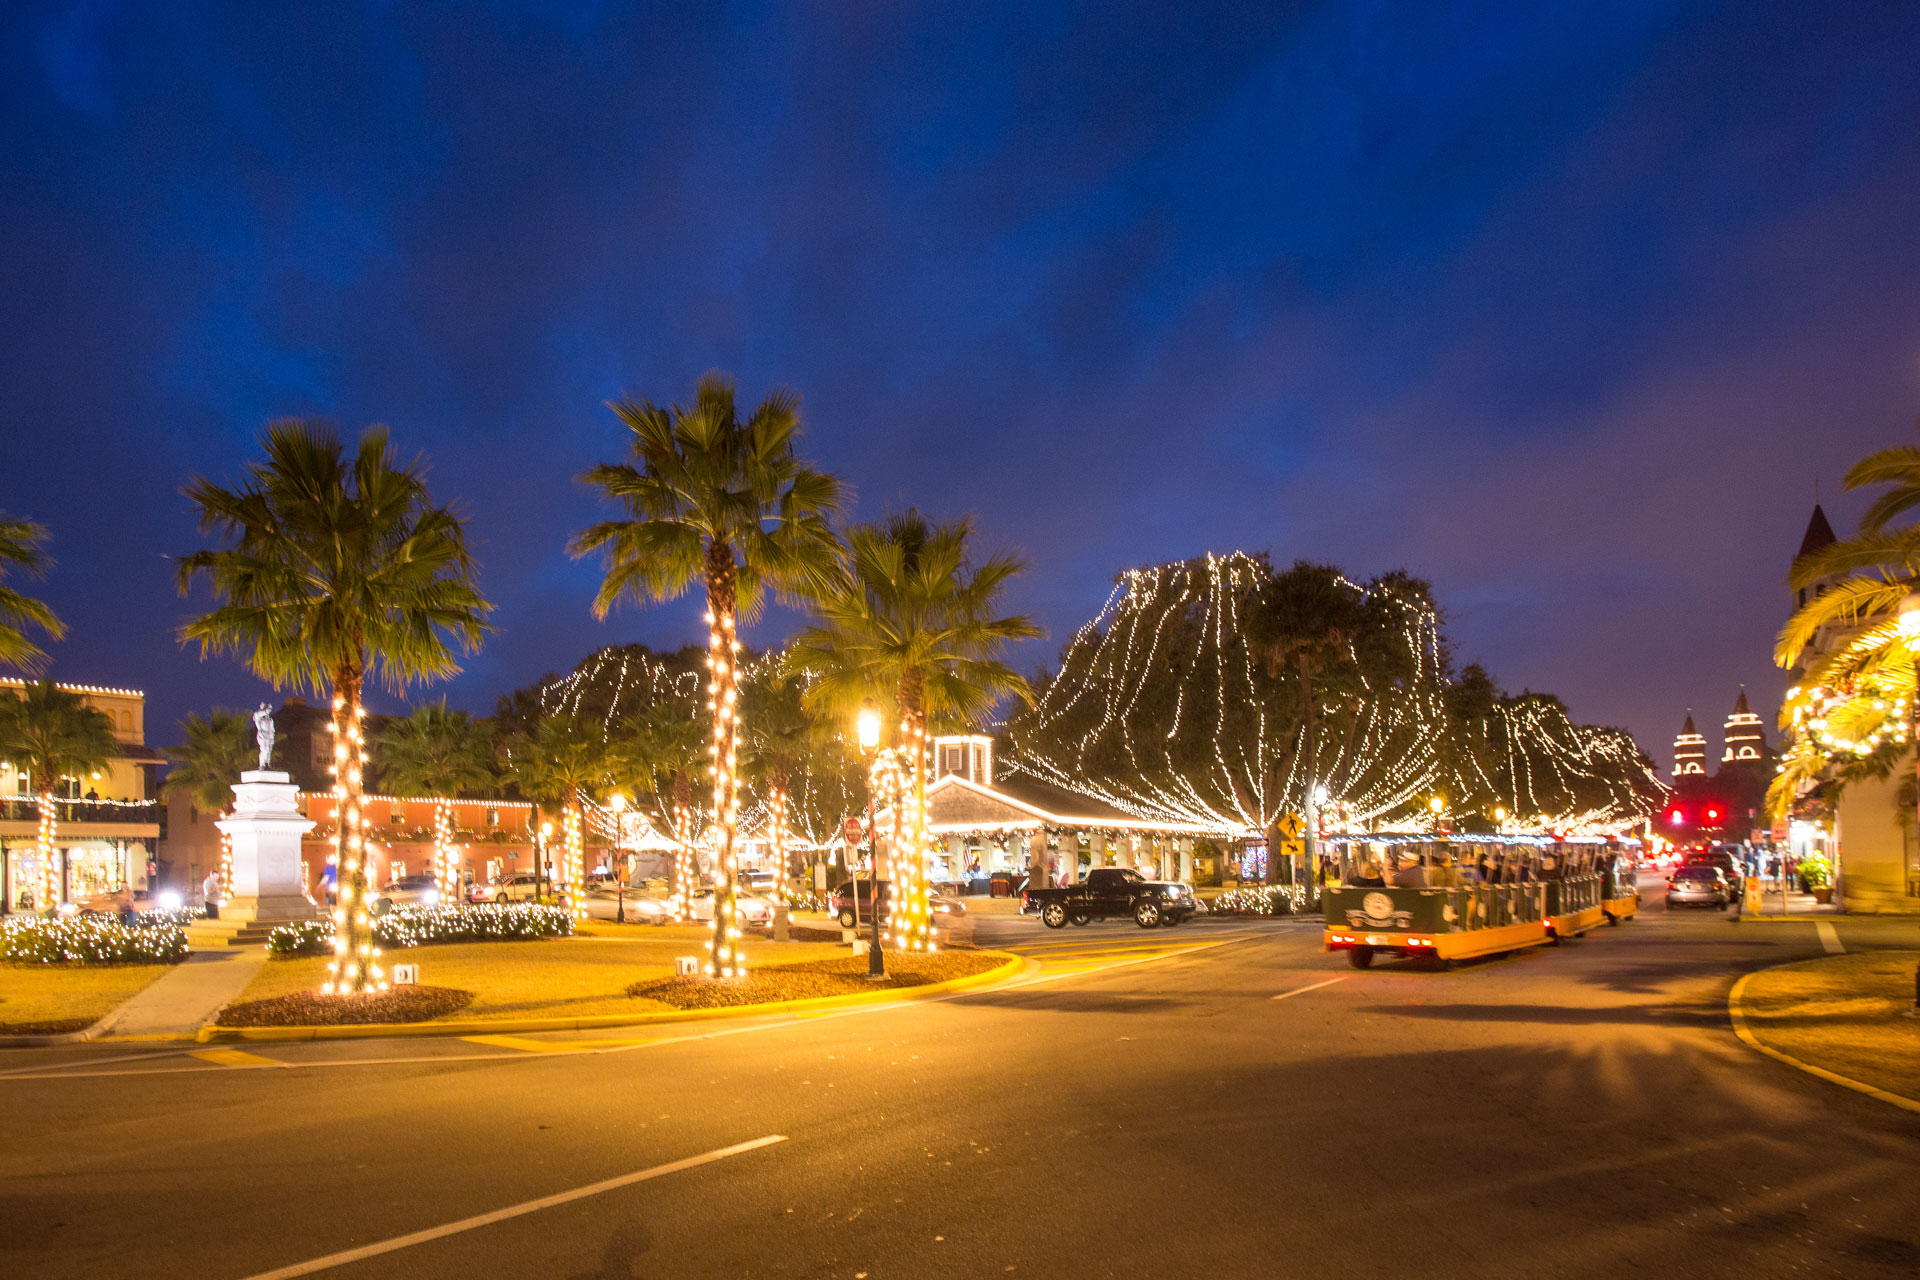 Millions of White Lights in Historic District